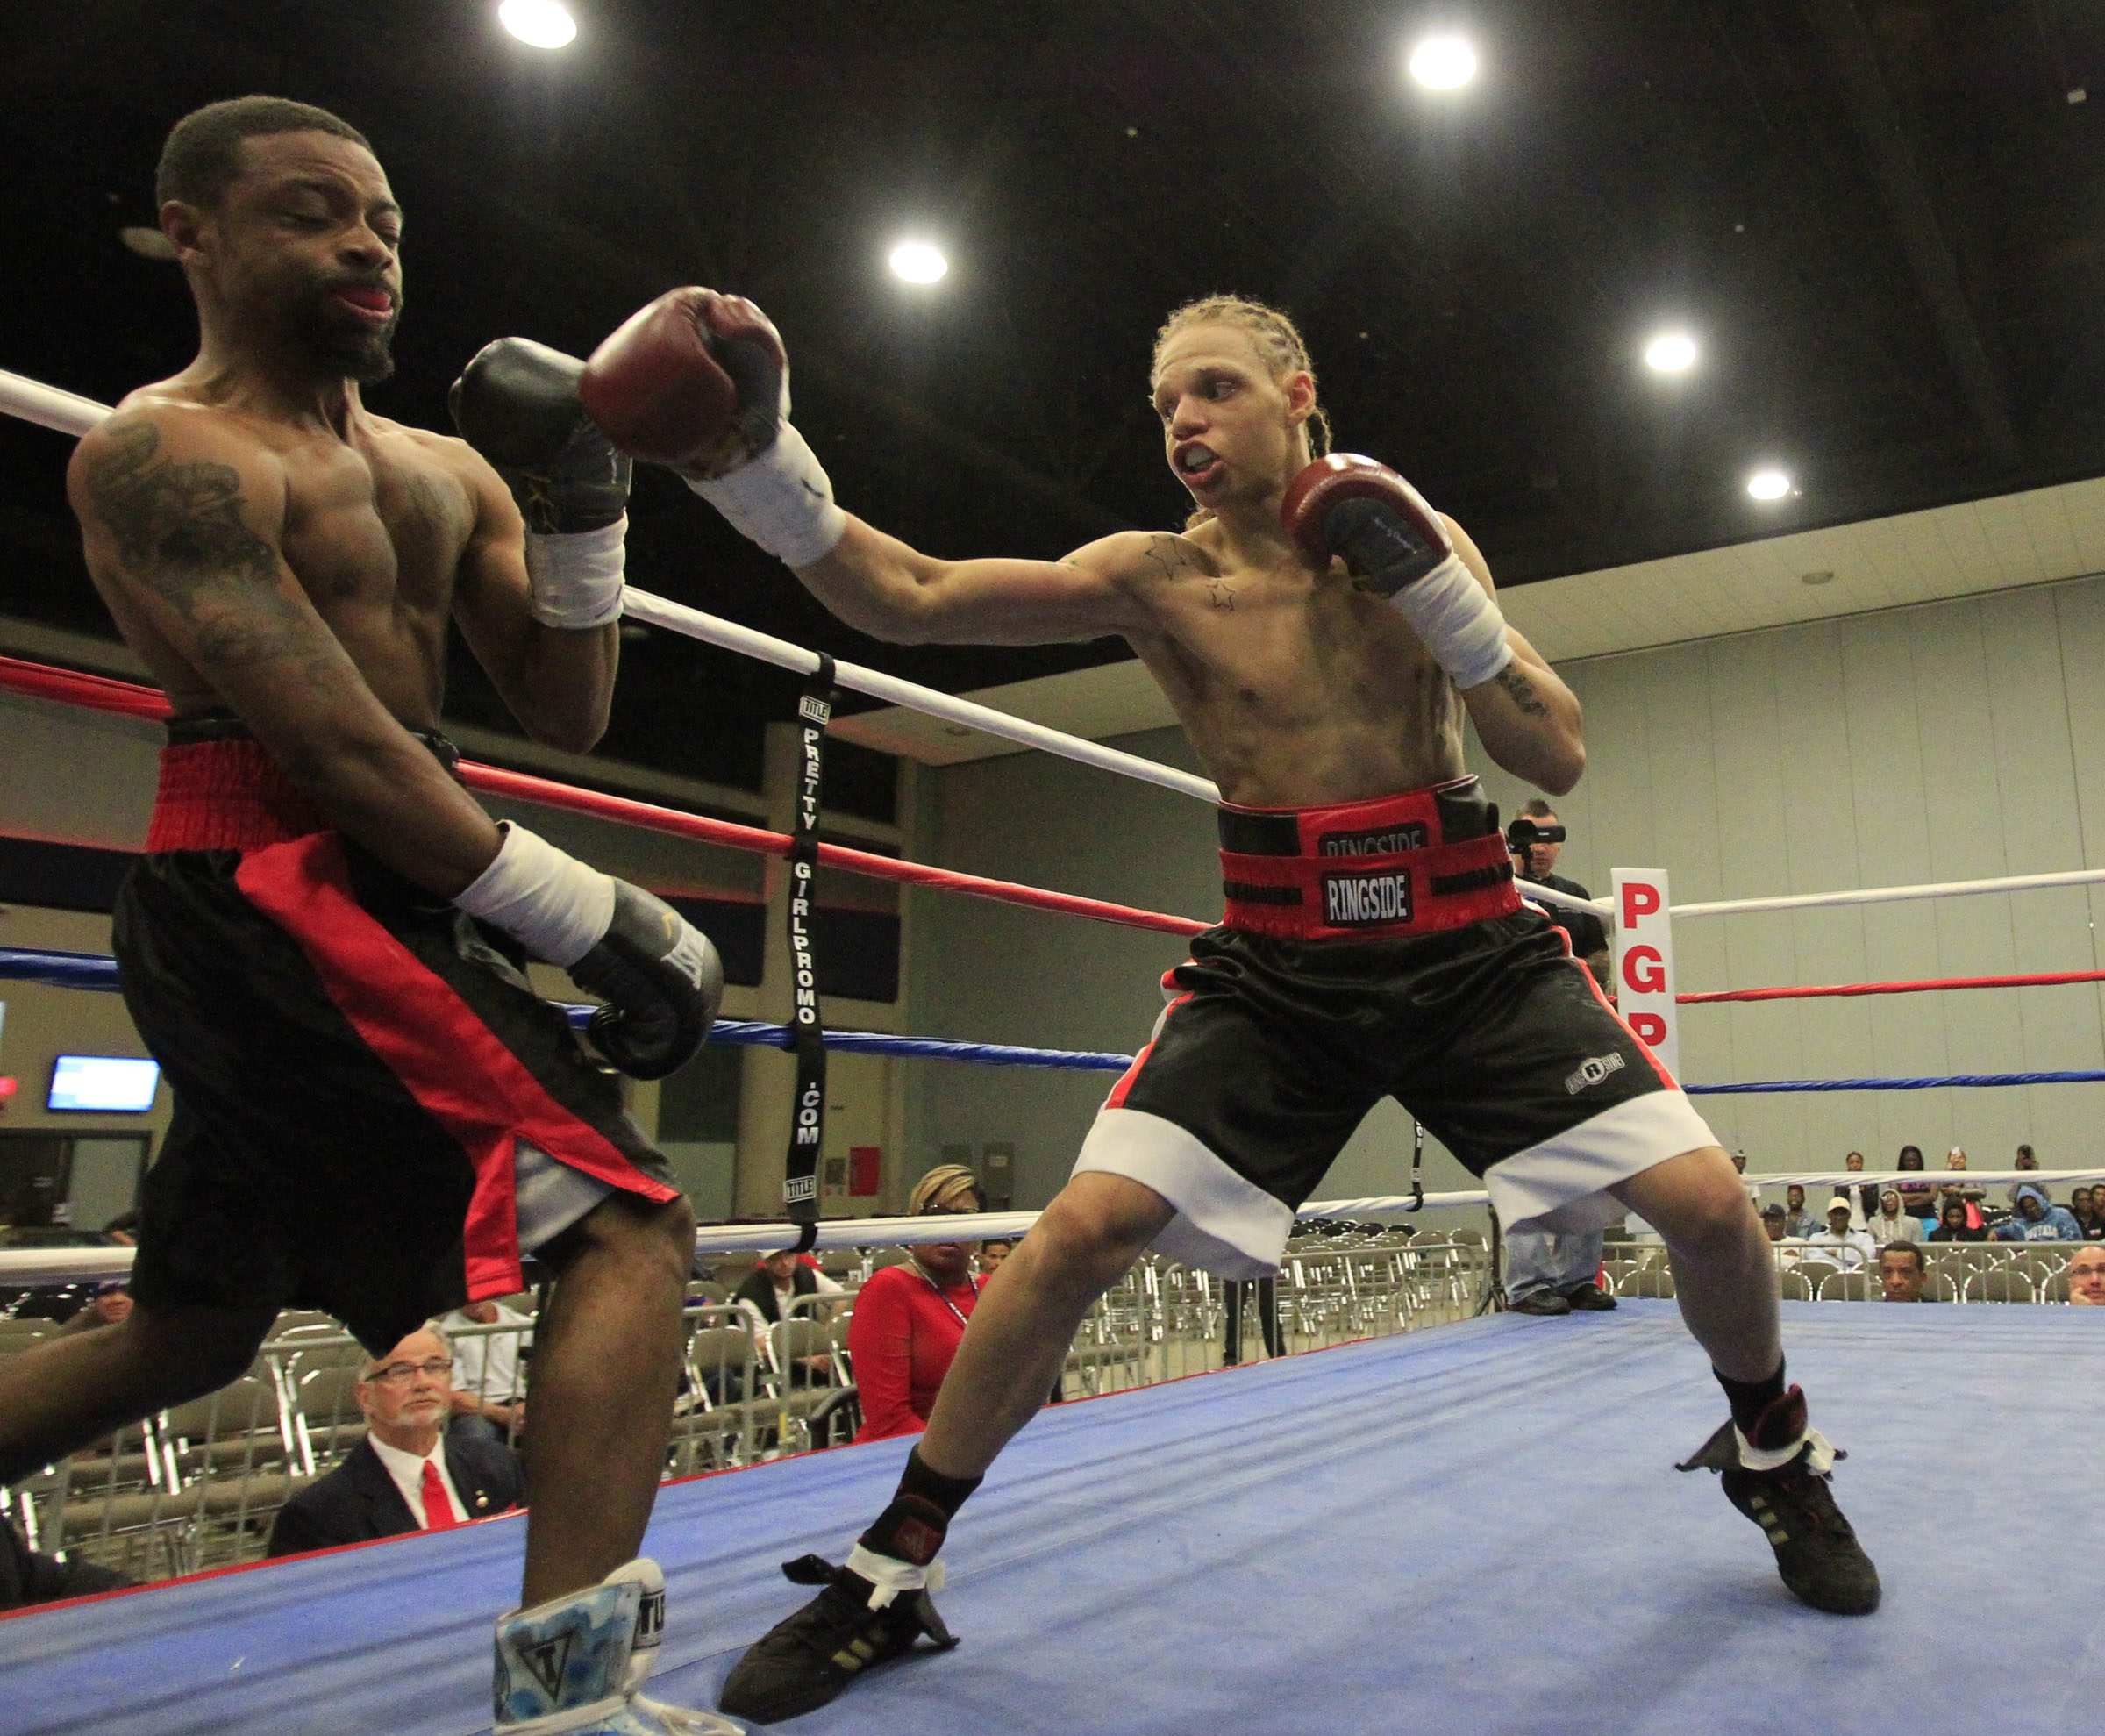 Super featherweight Lavias Williams, right, defeats DeWayne Wisdom in a second round TKO at the Buffalo Niagara Convention Center Thursday.